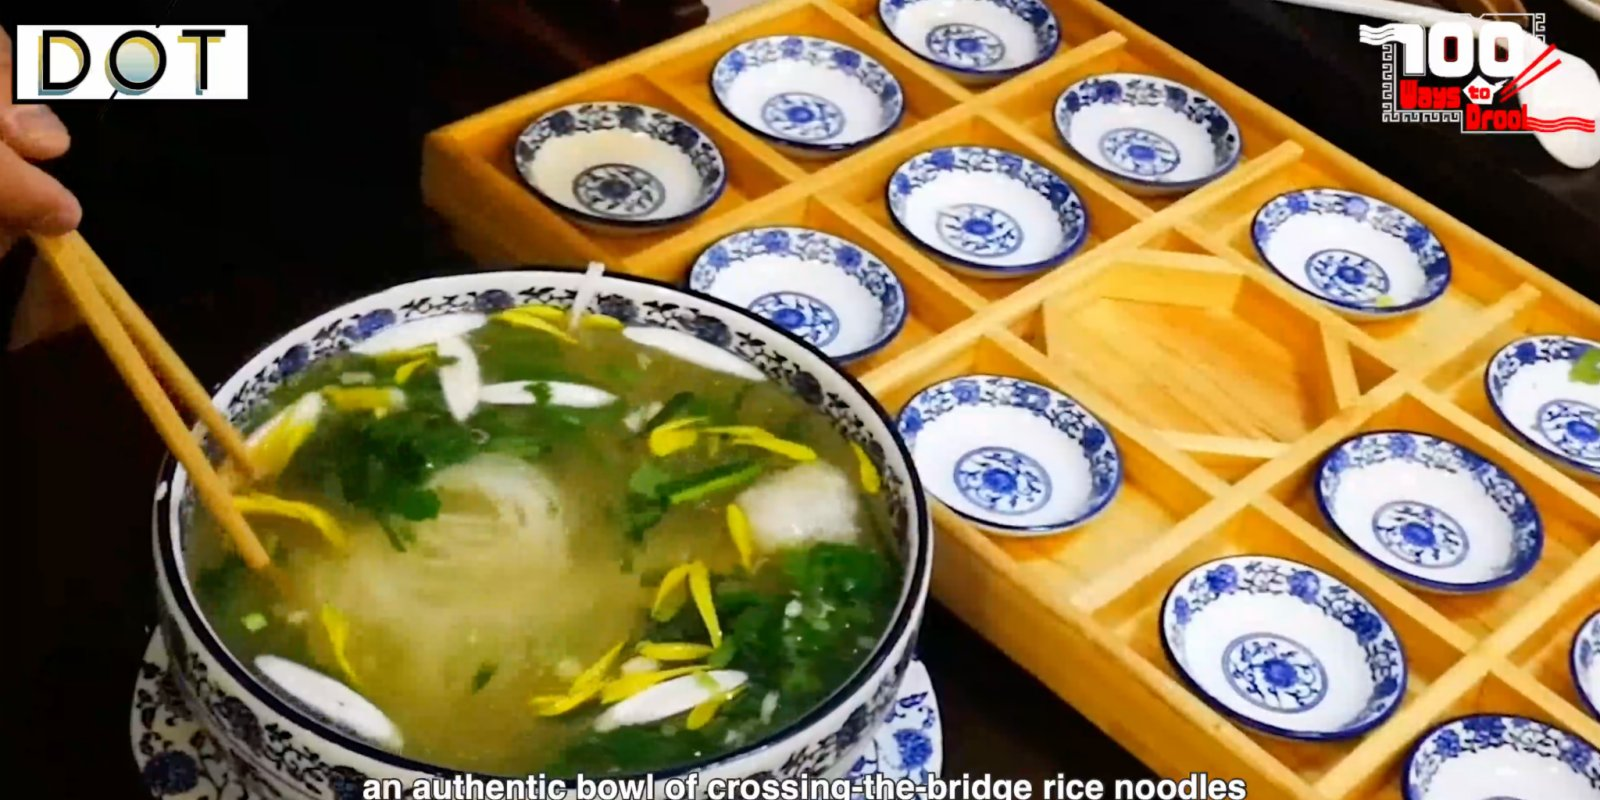 100 Ways To Drool | Authentic taste of Yunnan: Crossing-the-bridge rice noodles